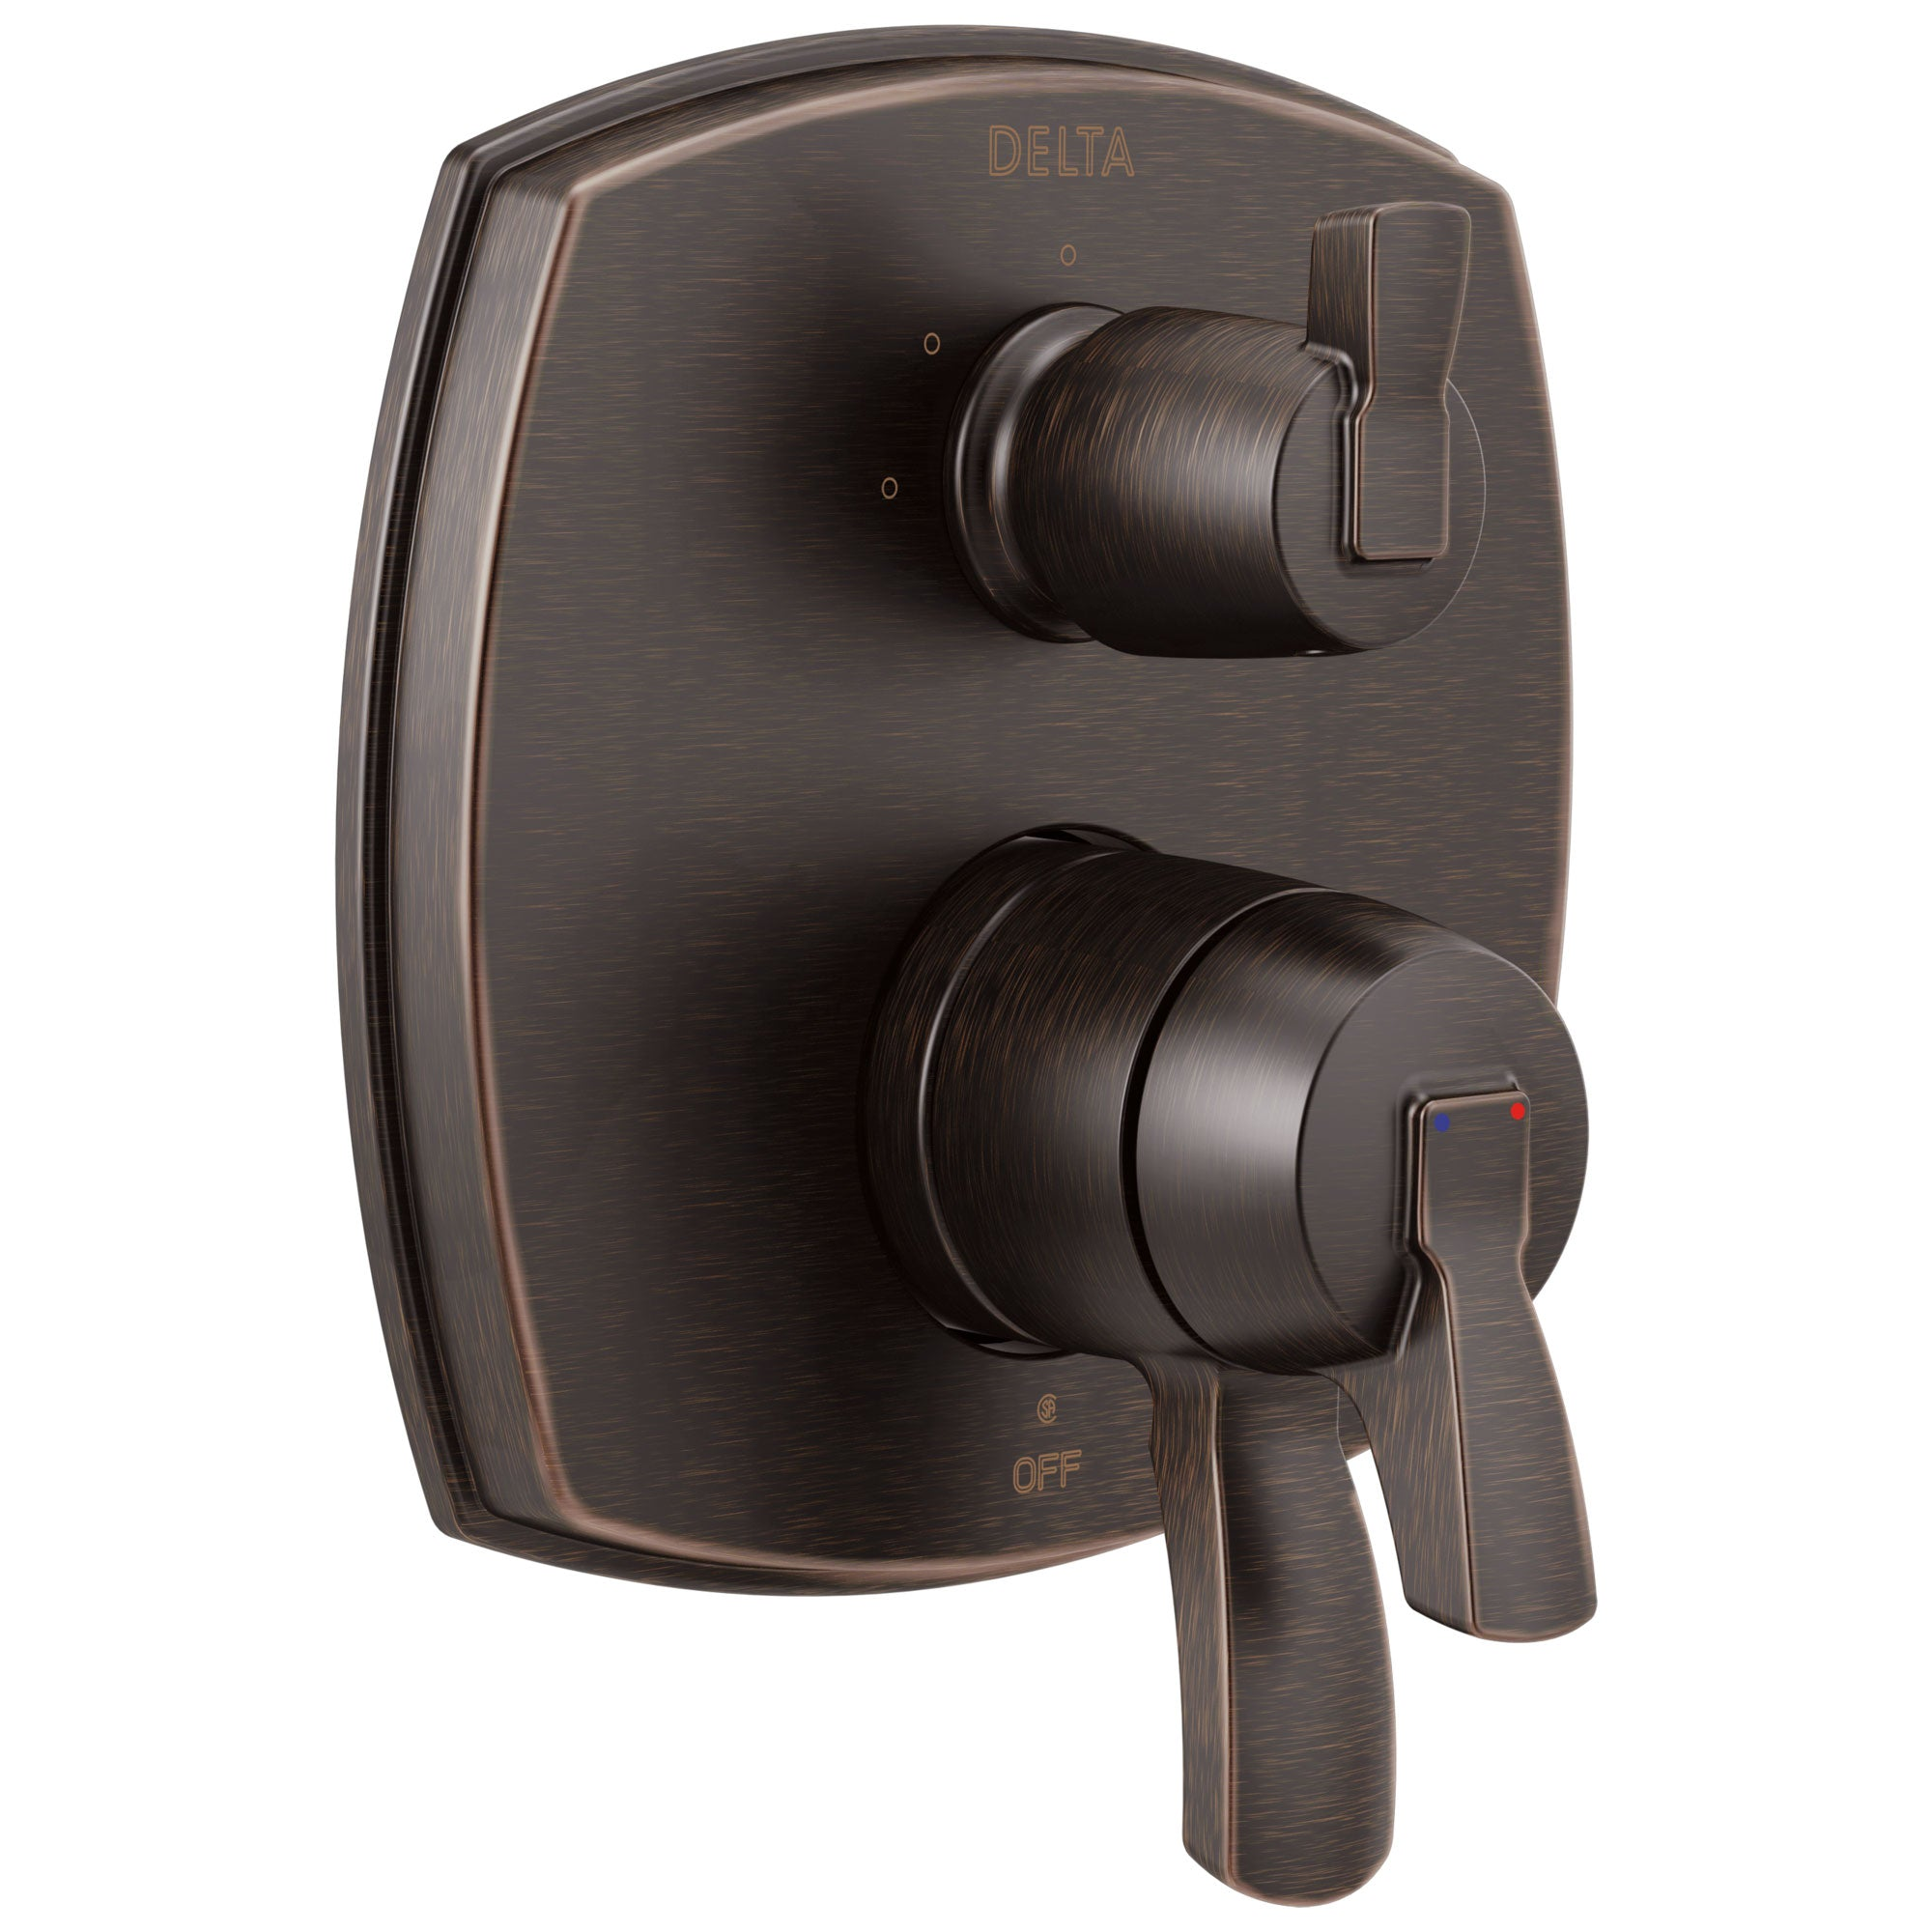 Delta Stryke Venetian Bronze Finish 17 Series Integrated 3-Function Lever Handle Diverter Shower System Control Includes Valve and Handles D3725V